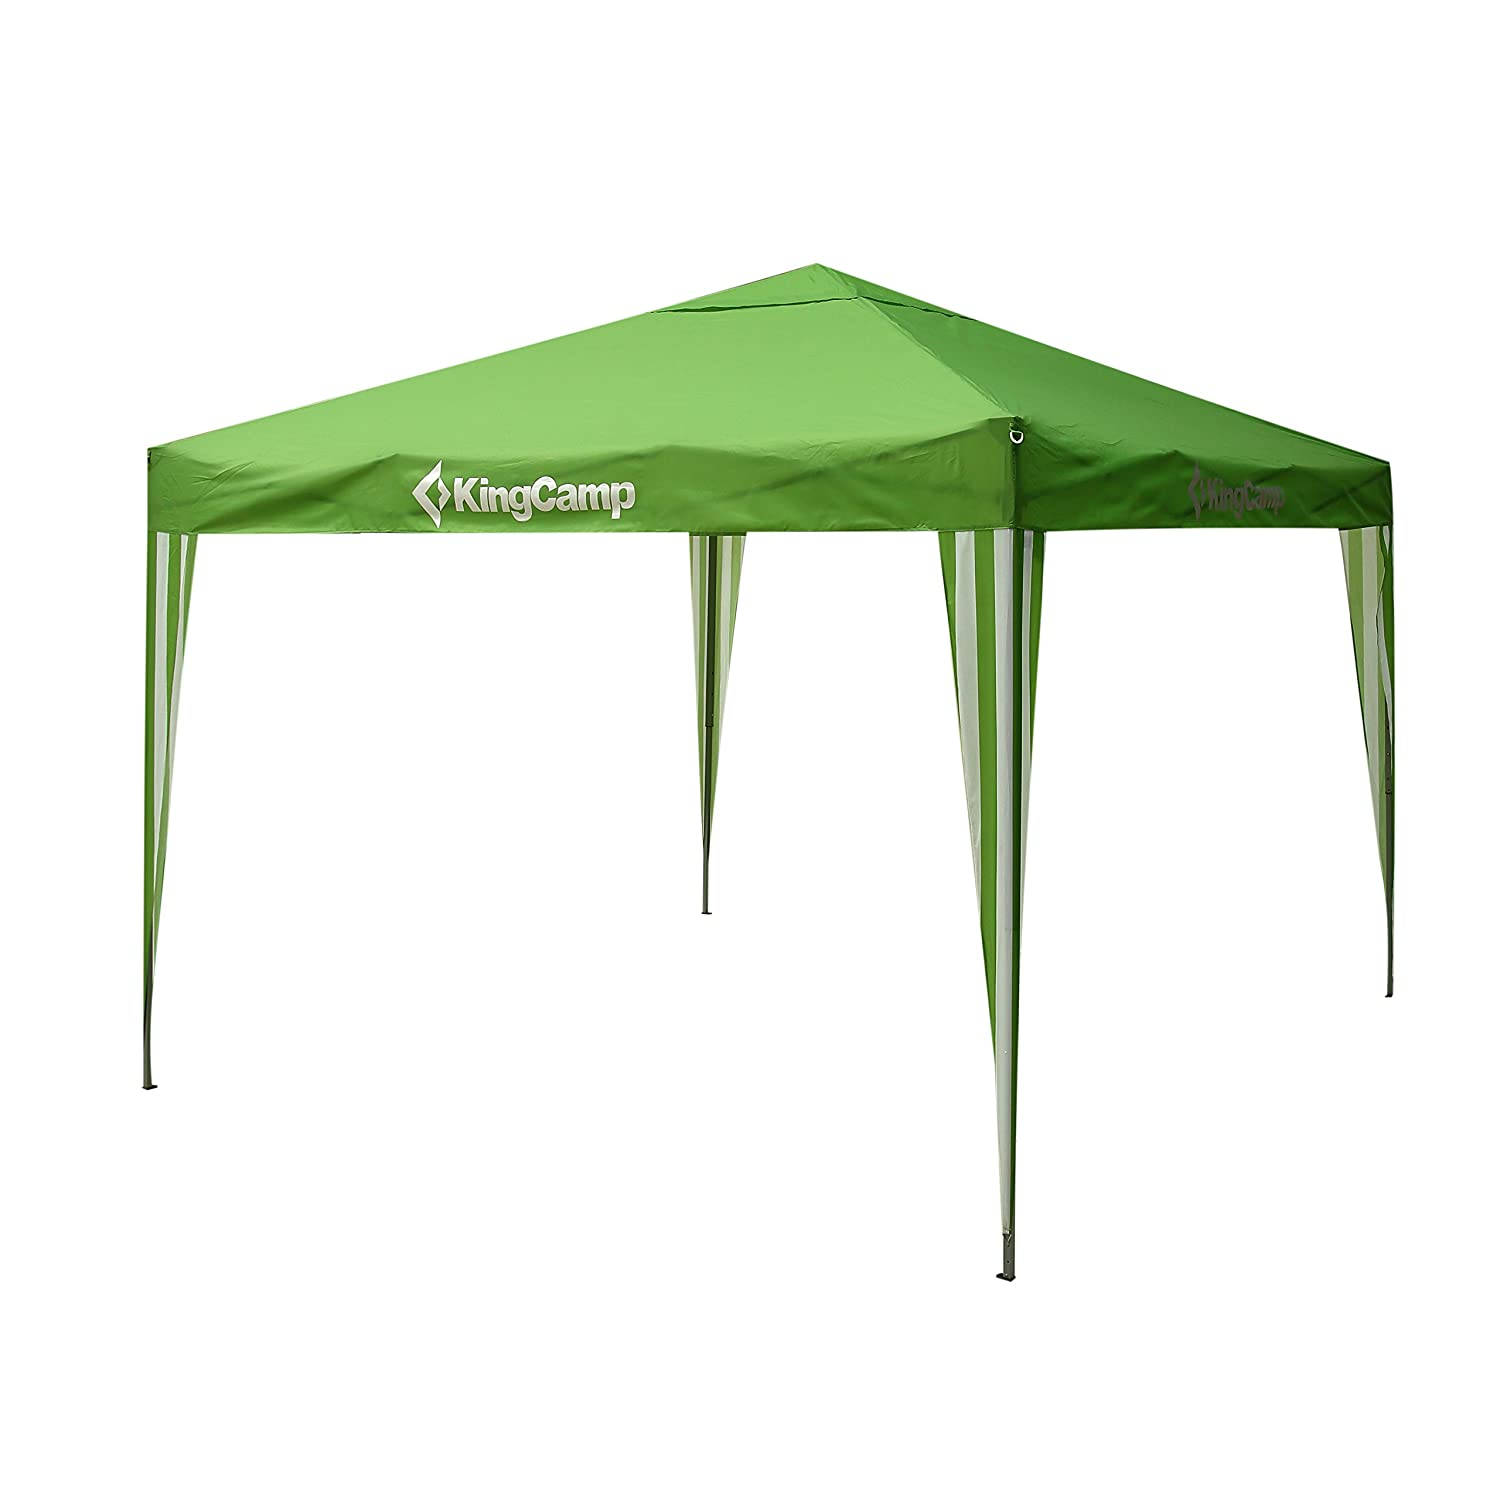 Amazon.com  KingC& Canopy 10 x 10 Feet Outdoor Instant Shade Collapsible with Easy-Pull Roller Wheeled Carry Bag  Garden u0026 Outdoor  sc 1 st  Amazon.com & Amazon.com : KingCamp Canopy 10 x 10 Feet Outdoor Instant Shade ...